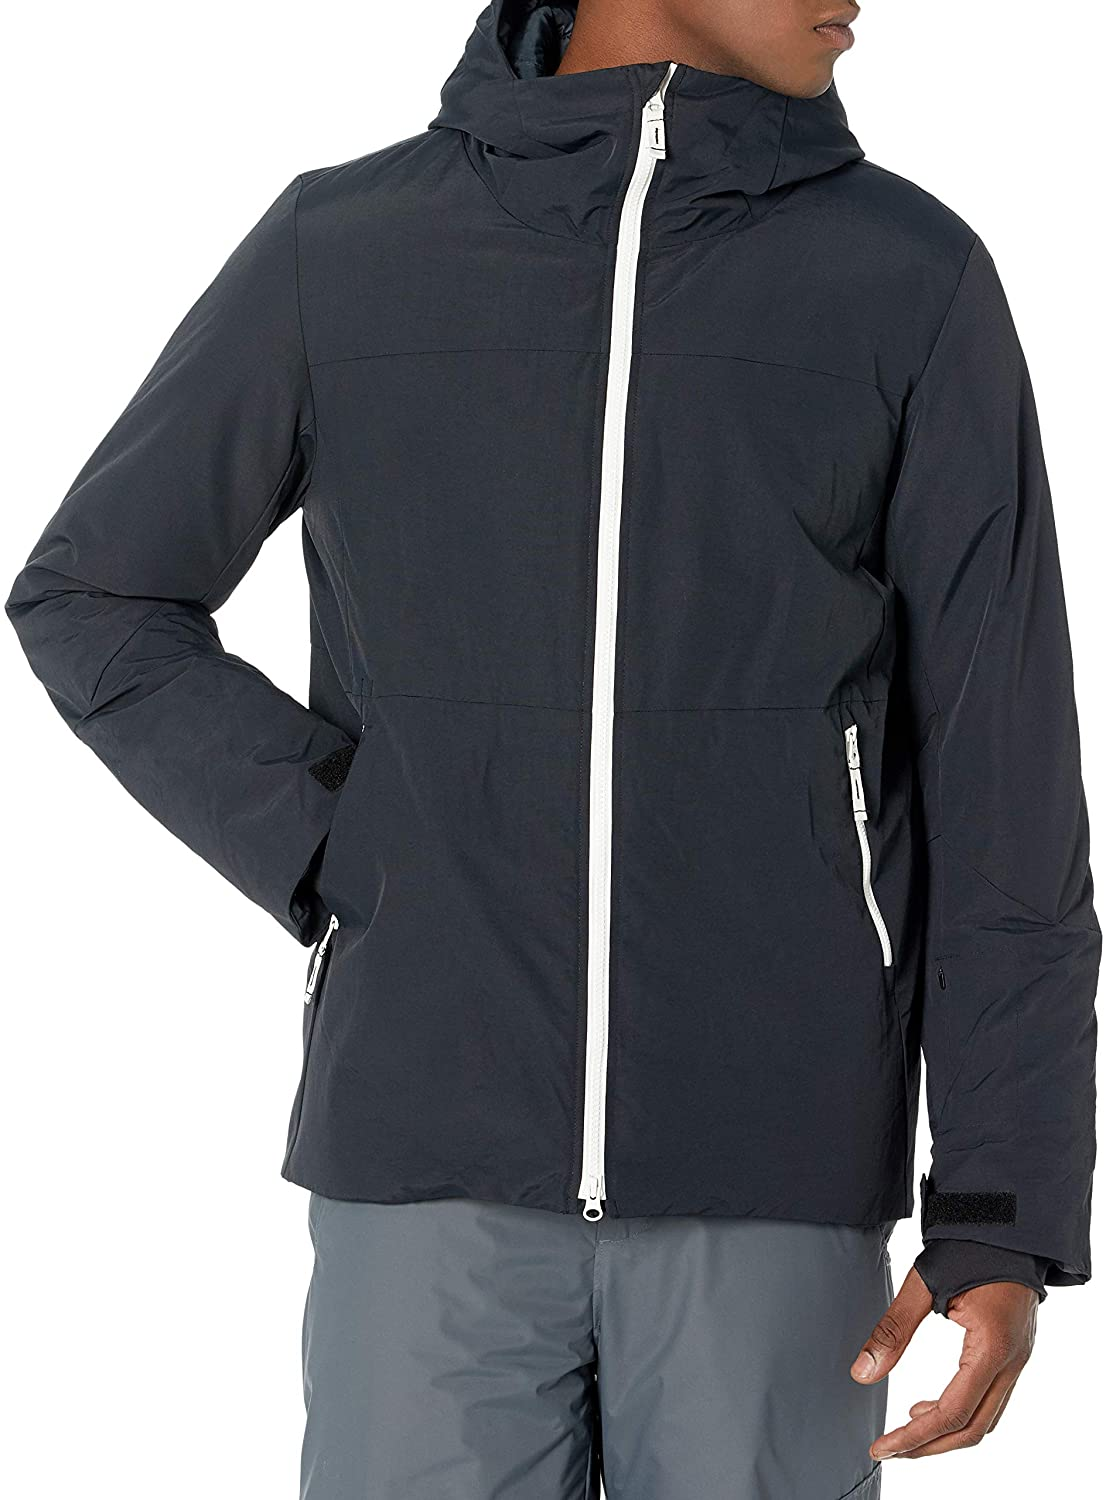 Amazon Essentials Men's Long-Sleeve Insulated Water-Resistant Hooded Snow Jacket